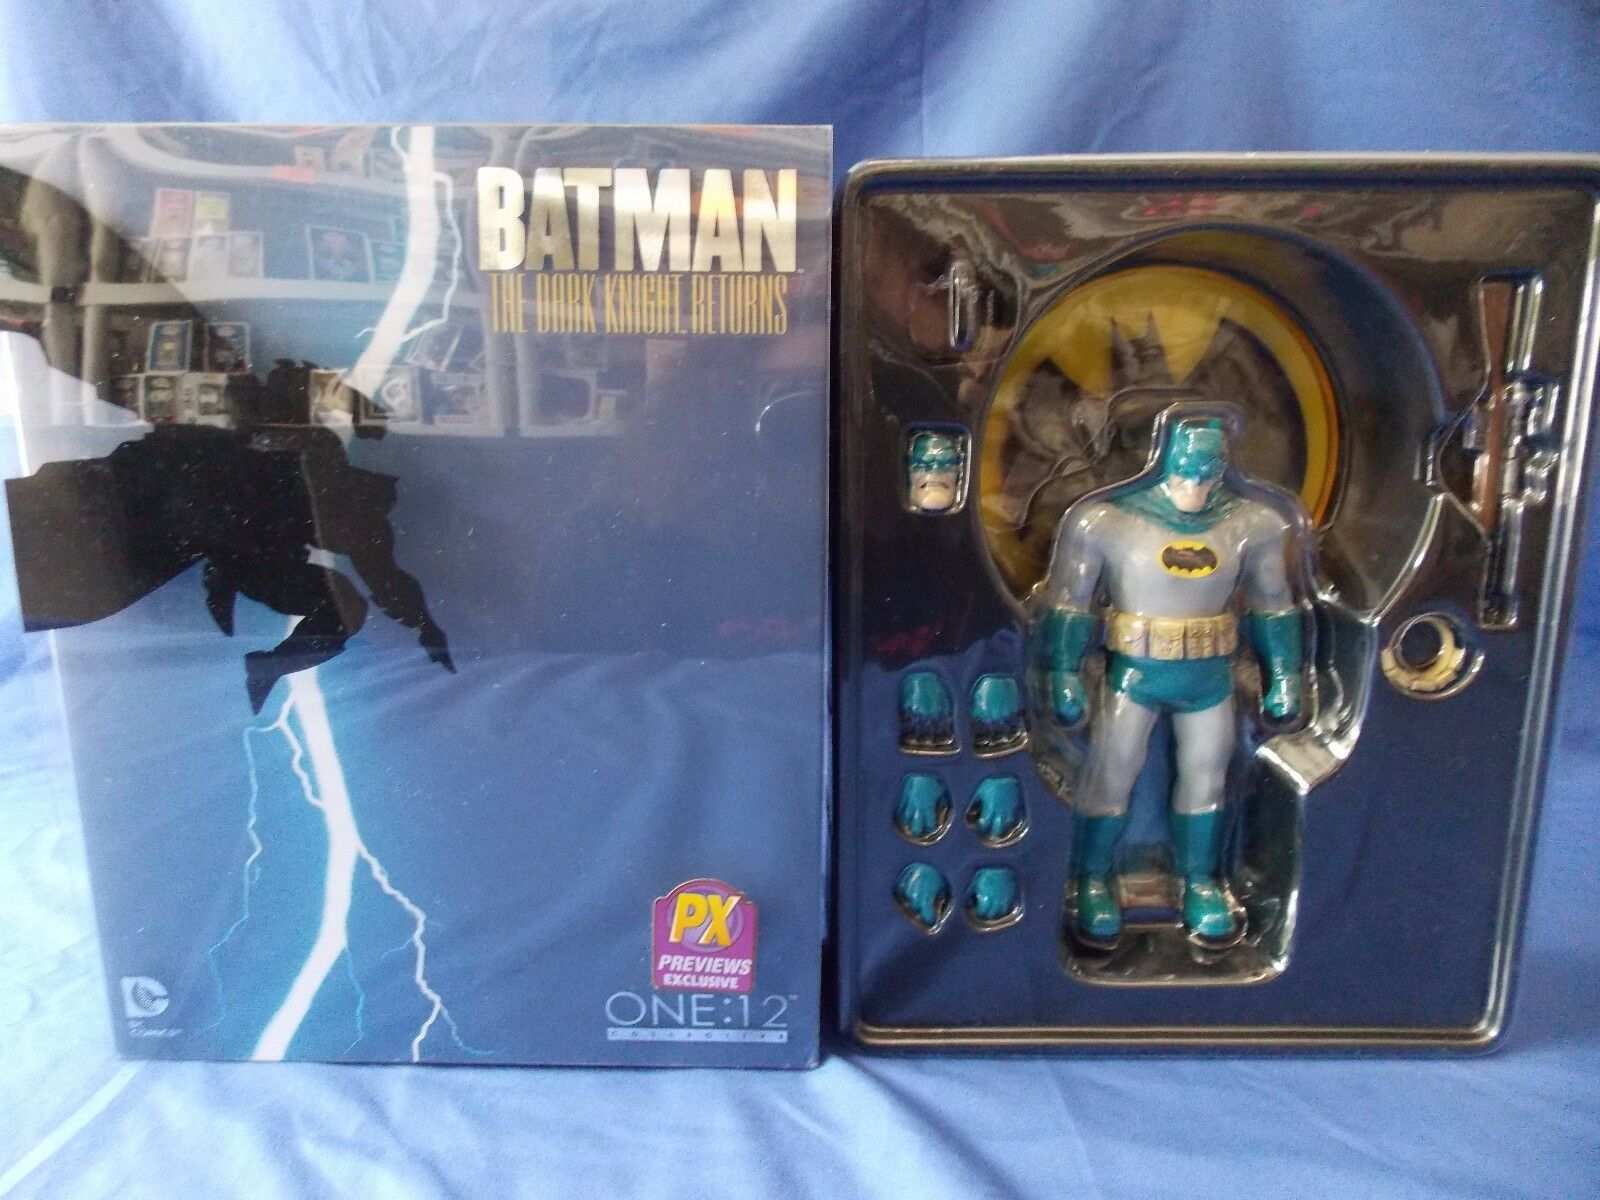 ONE:12 COLLECTION COLLECTION COLLECTION BATMAN THE DARK KNIGHT RETURNS 1:12 SCALE ACTION FIGURE PX 1a2a46